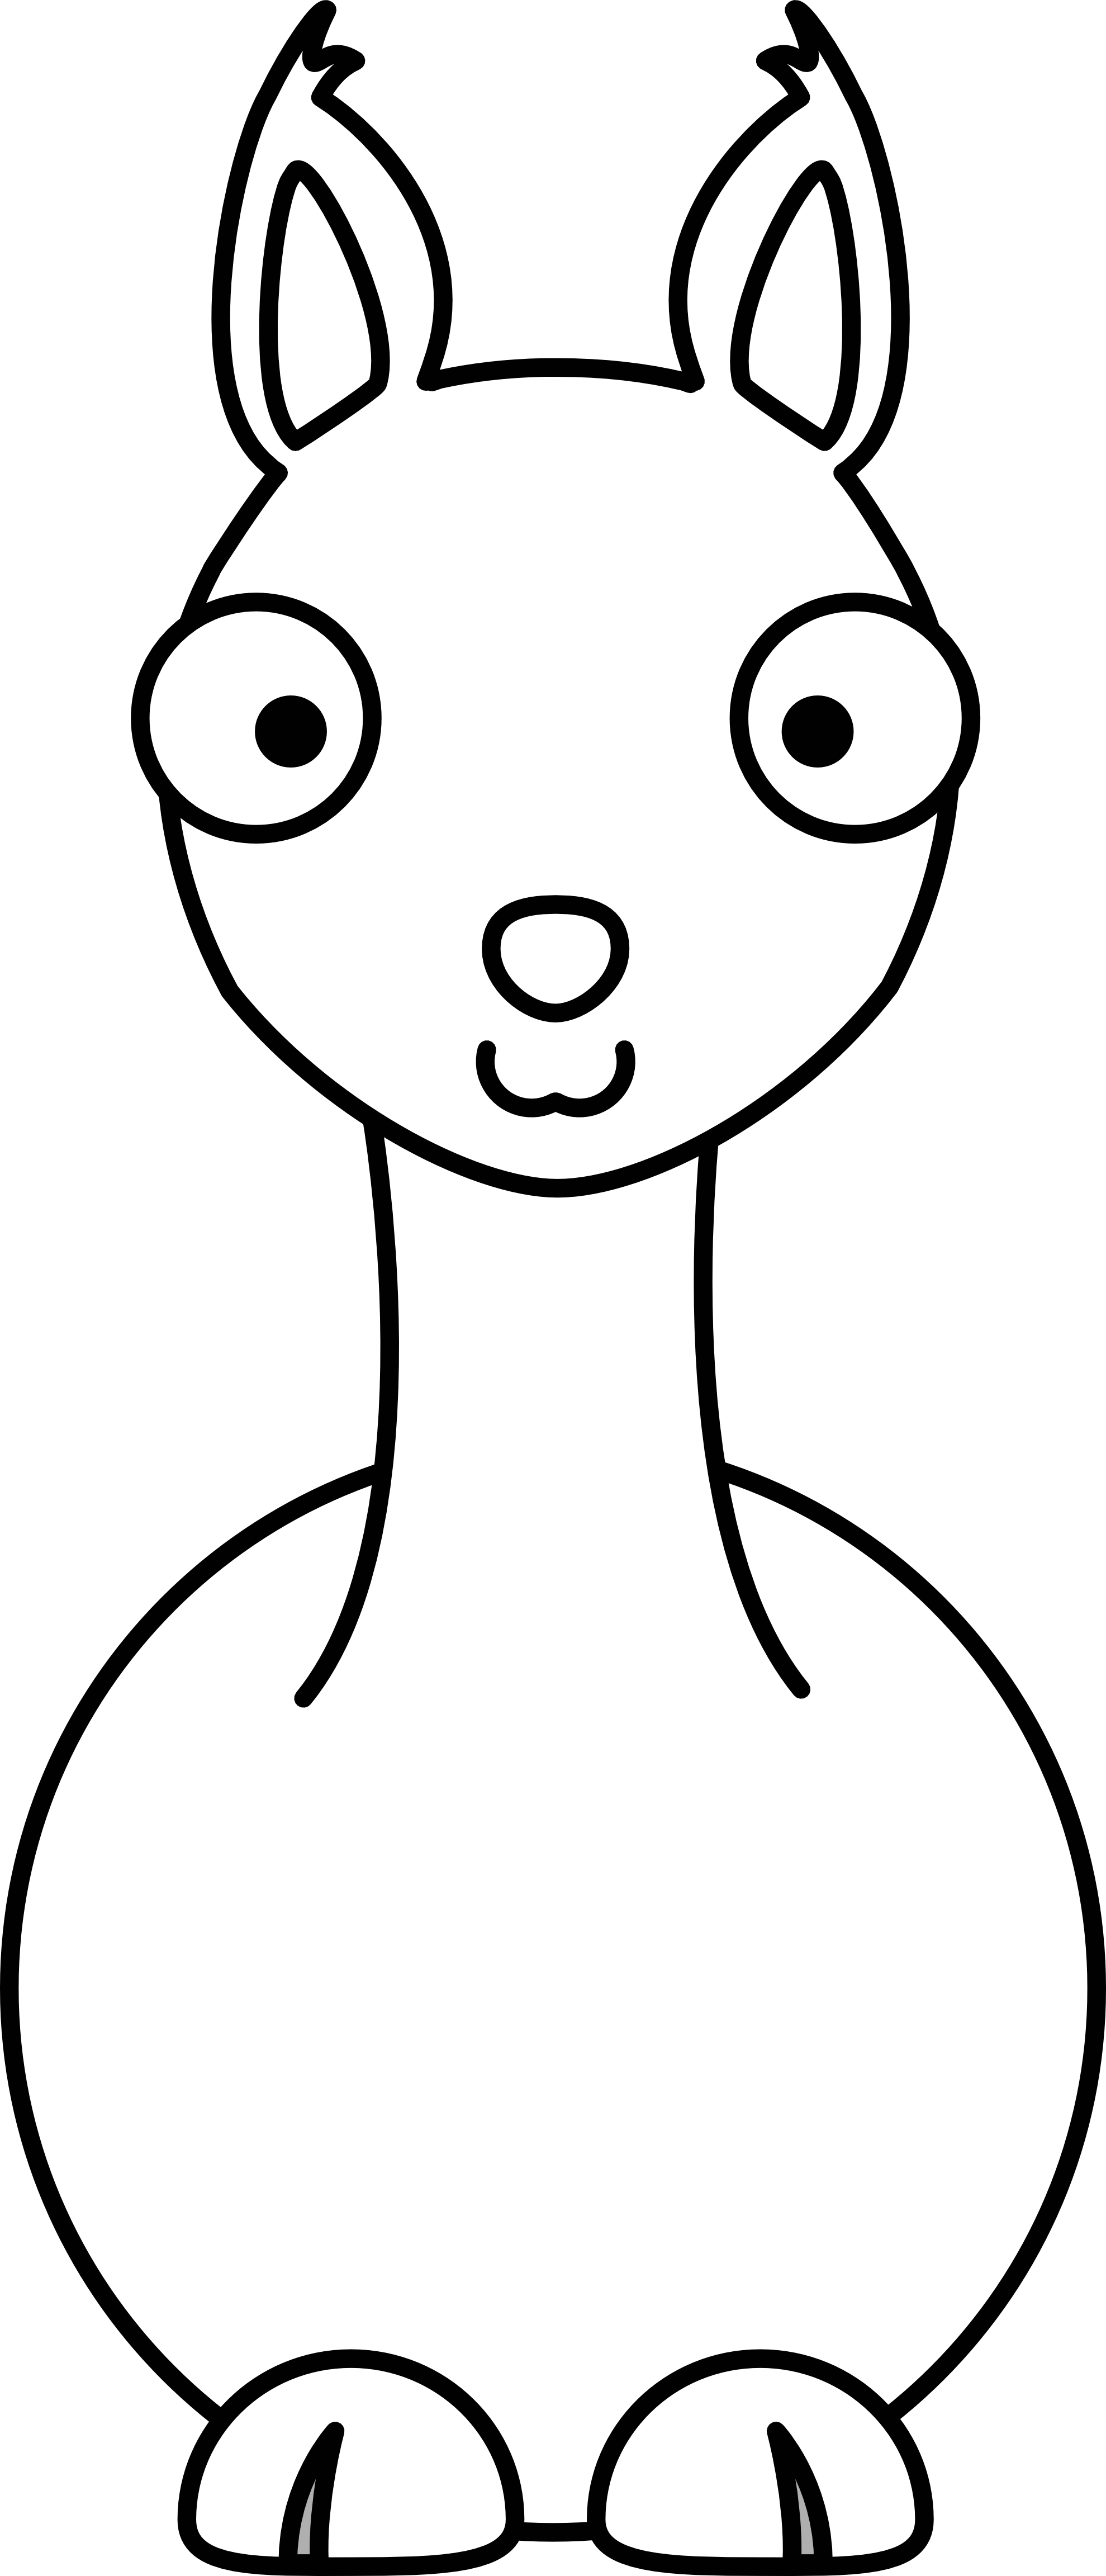 Llama Clipart to Download.